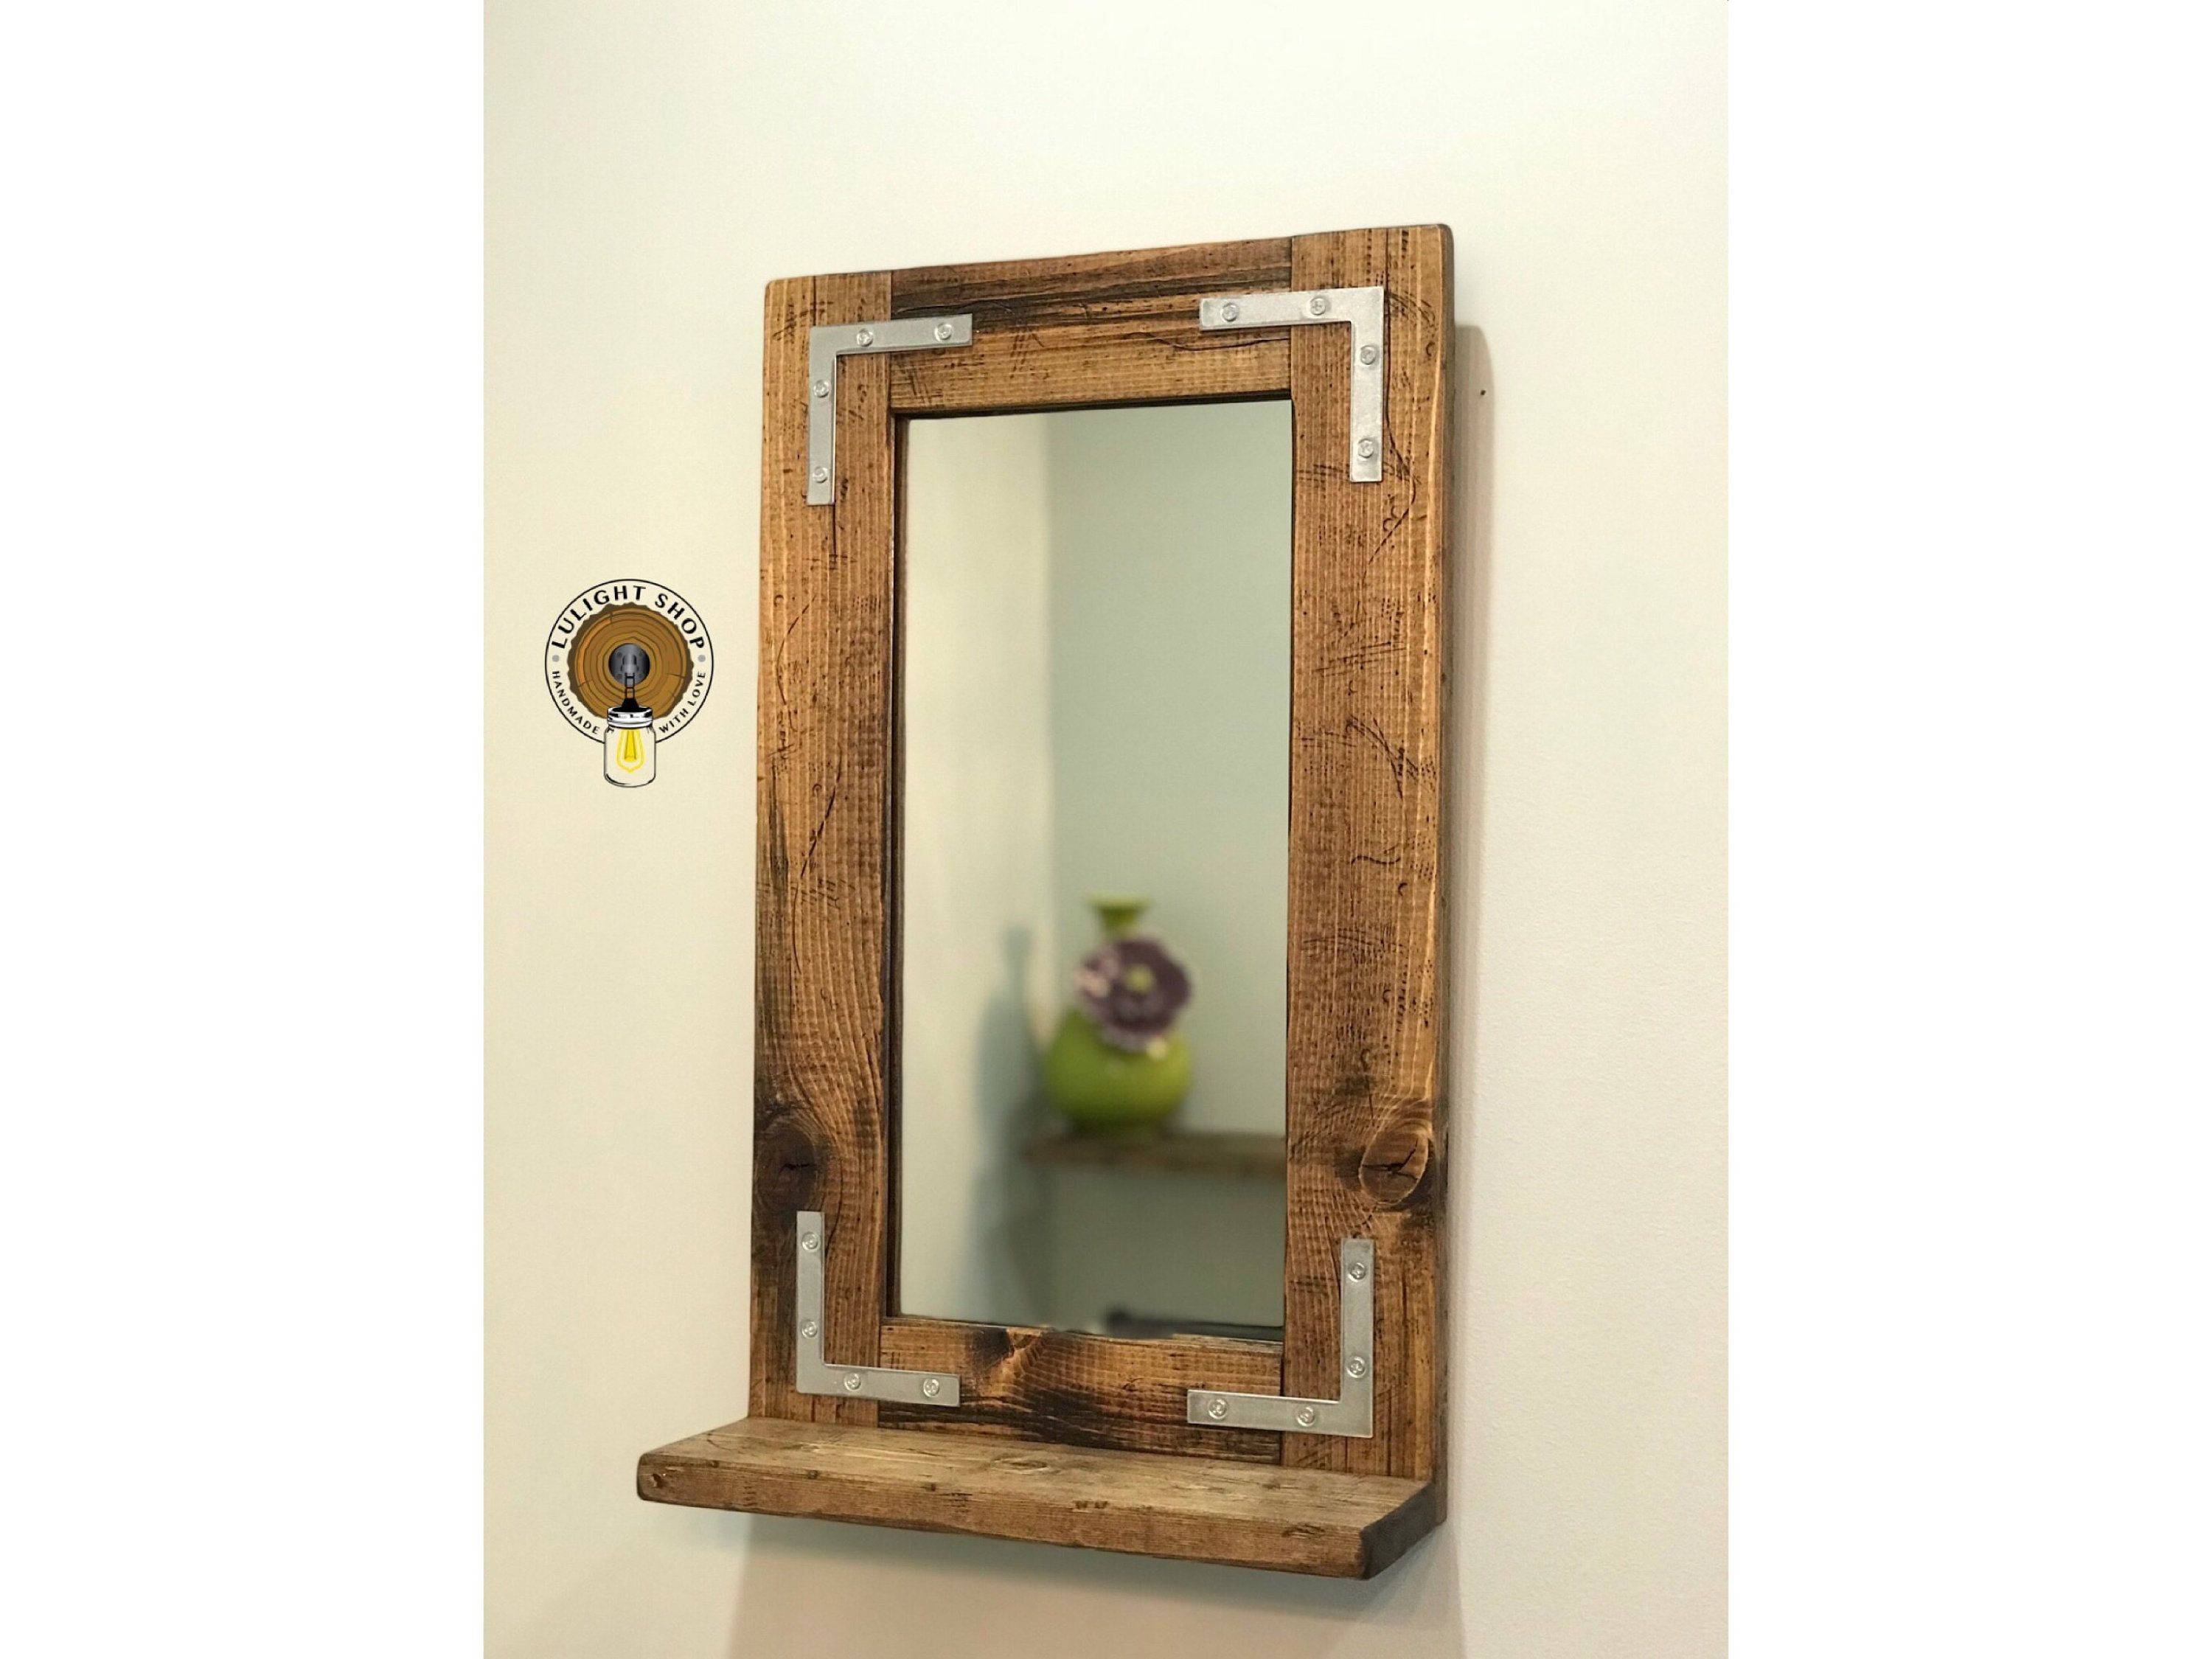 Rustic Distressed Mirror With Shelf Small Mirror Bathroom Mirror Framed Mirror Wall Mirror Wood Mir Bathroom Mirror Frame Mirror With Shelf Rustic Mirrors